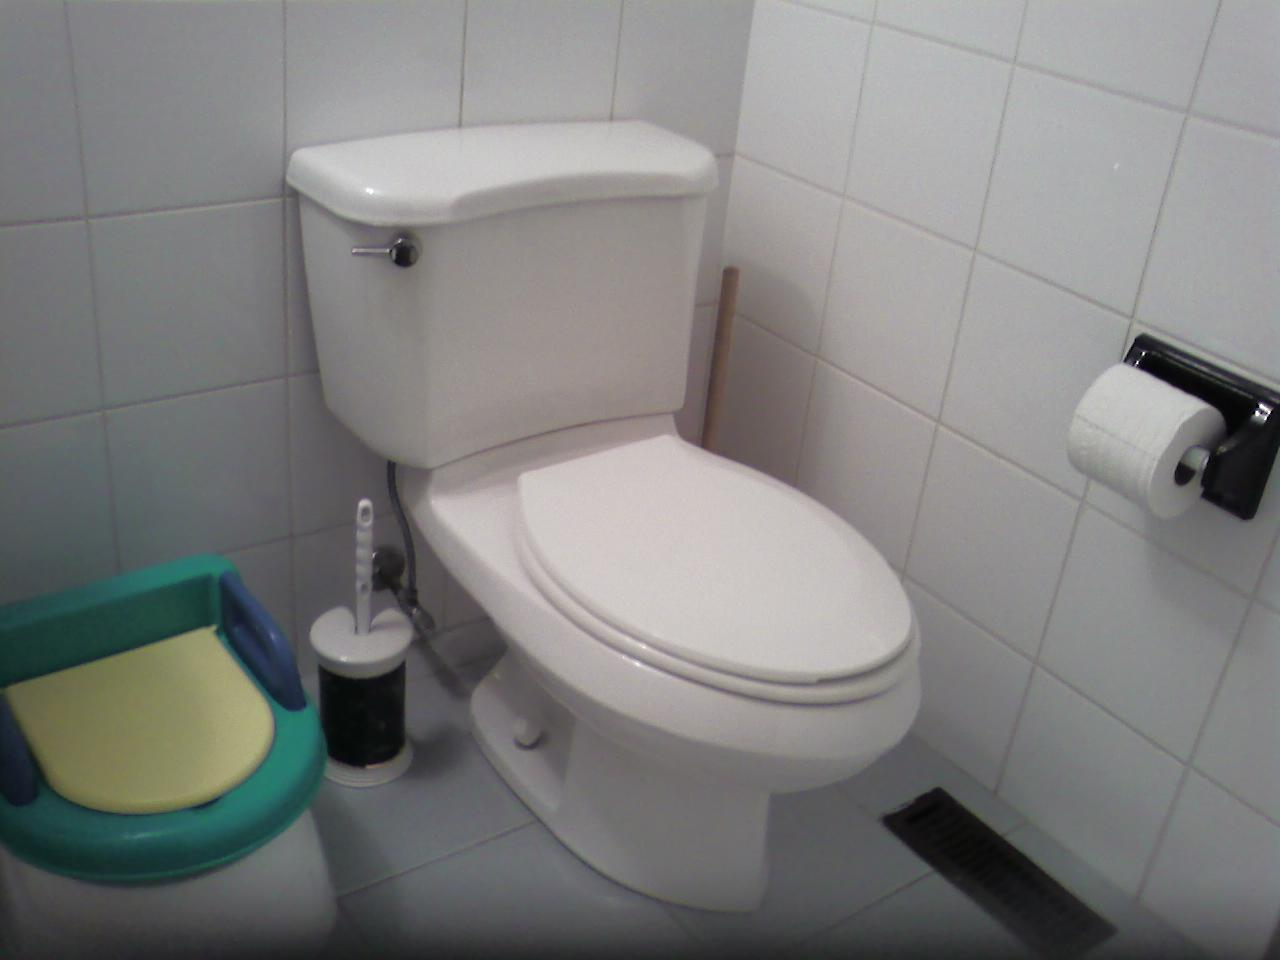 Slow Flushing Toilet Annoyances - Plumbing - DIY Home Improvement ...